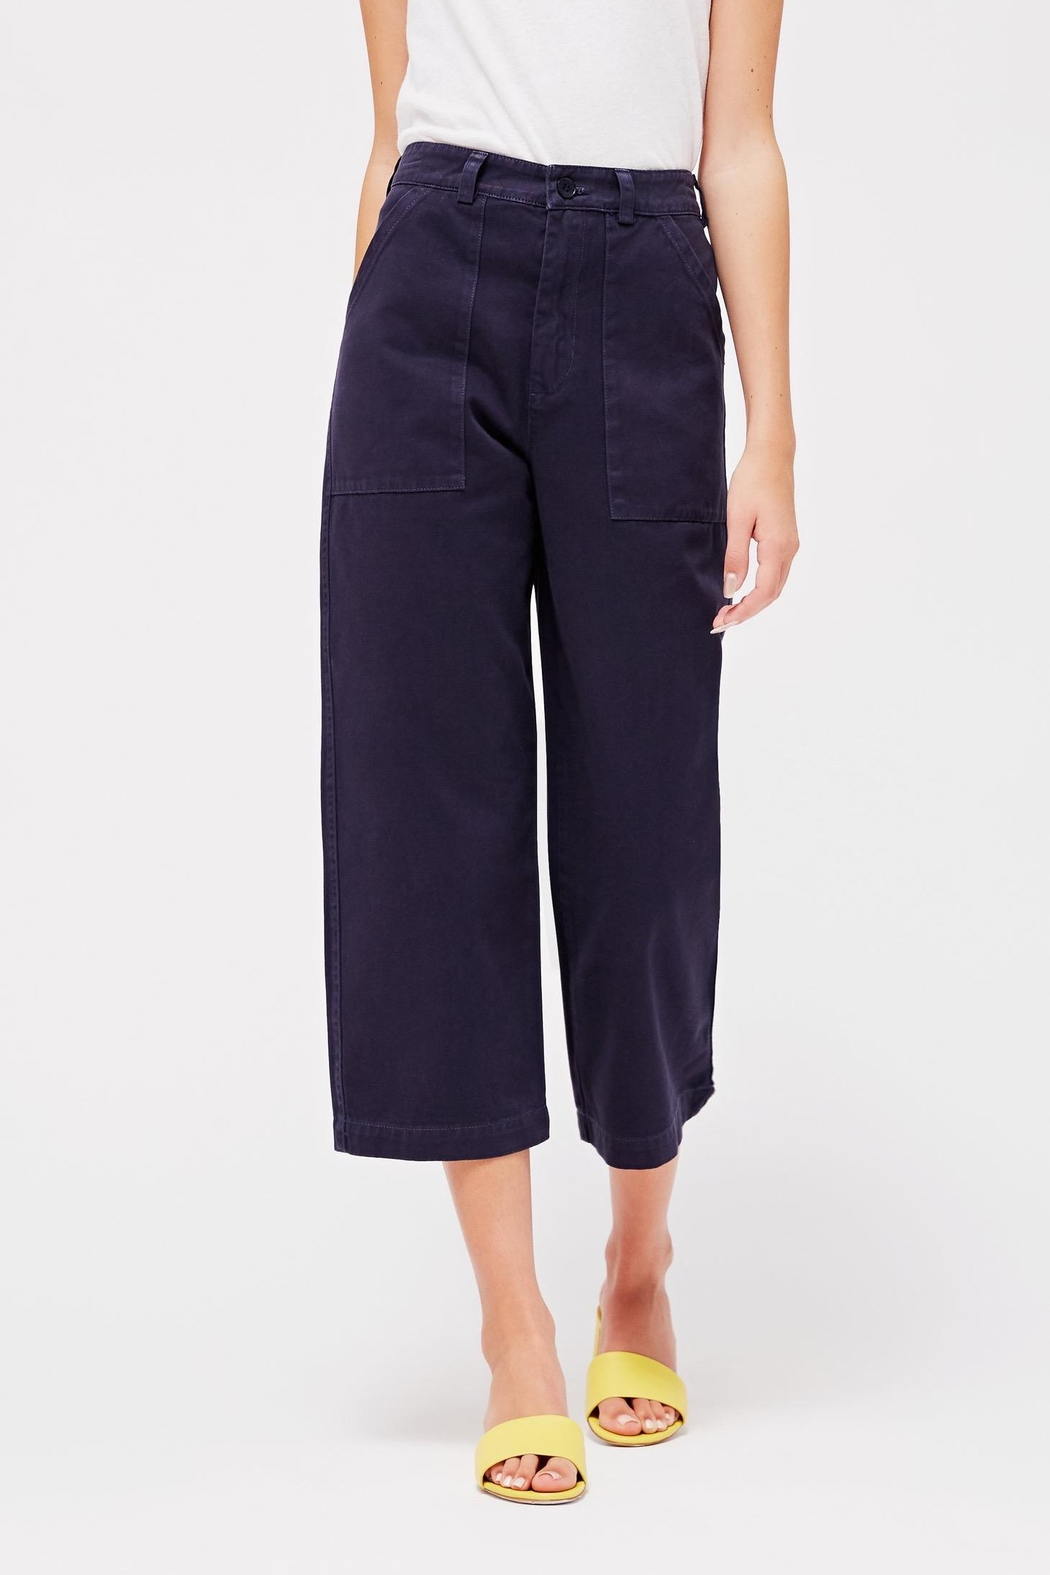 LACAUSA Stella Trousers - Main Image